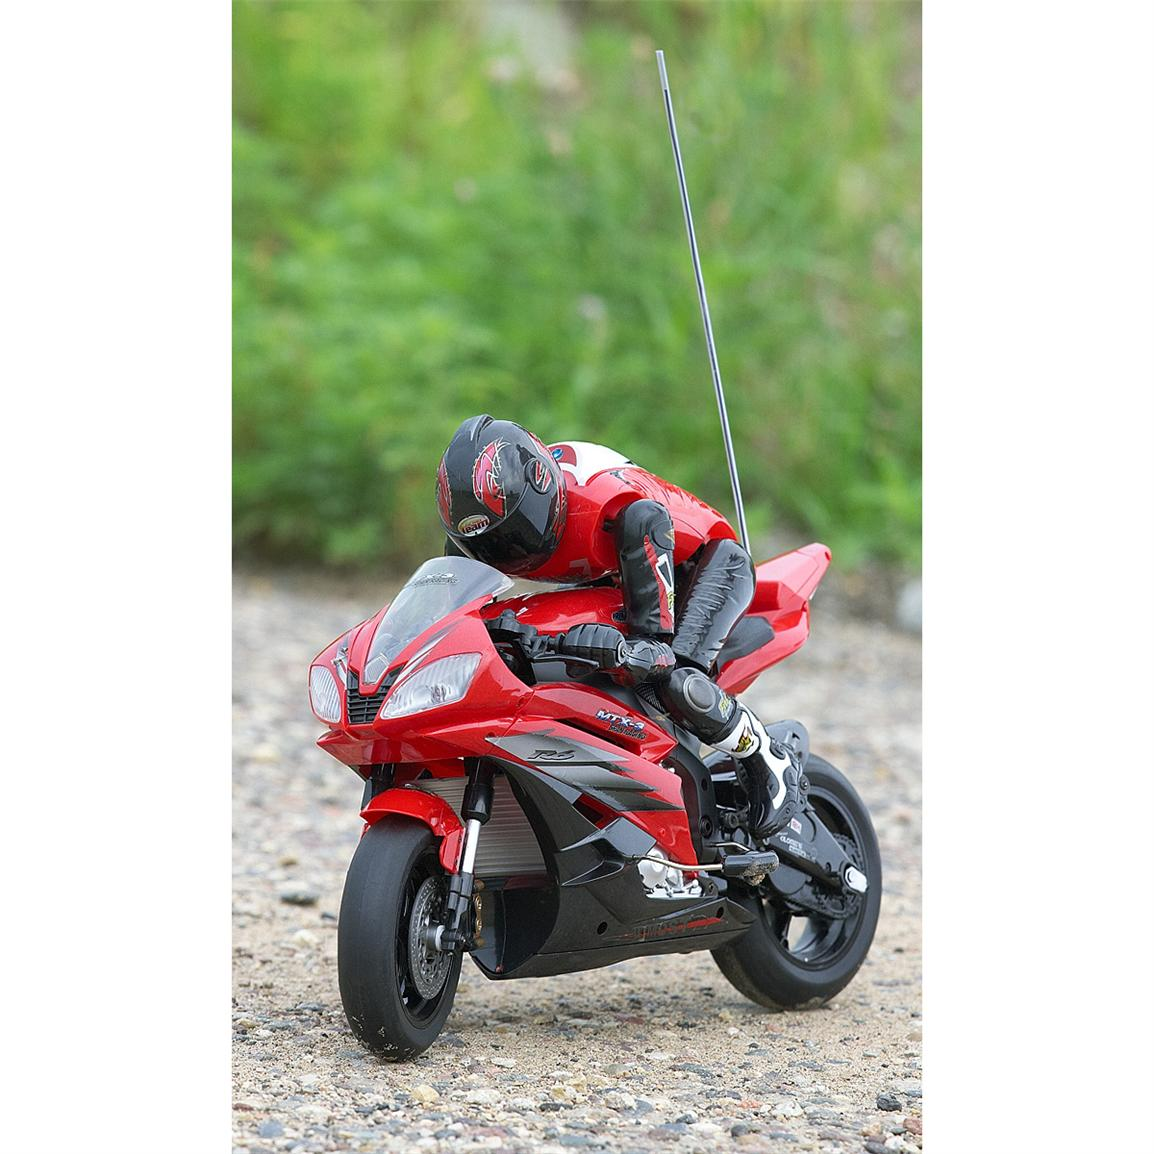 Radio-controlled Motorcycle; Amazing speed up to 14 mph; Large size, over 16 inches long